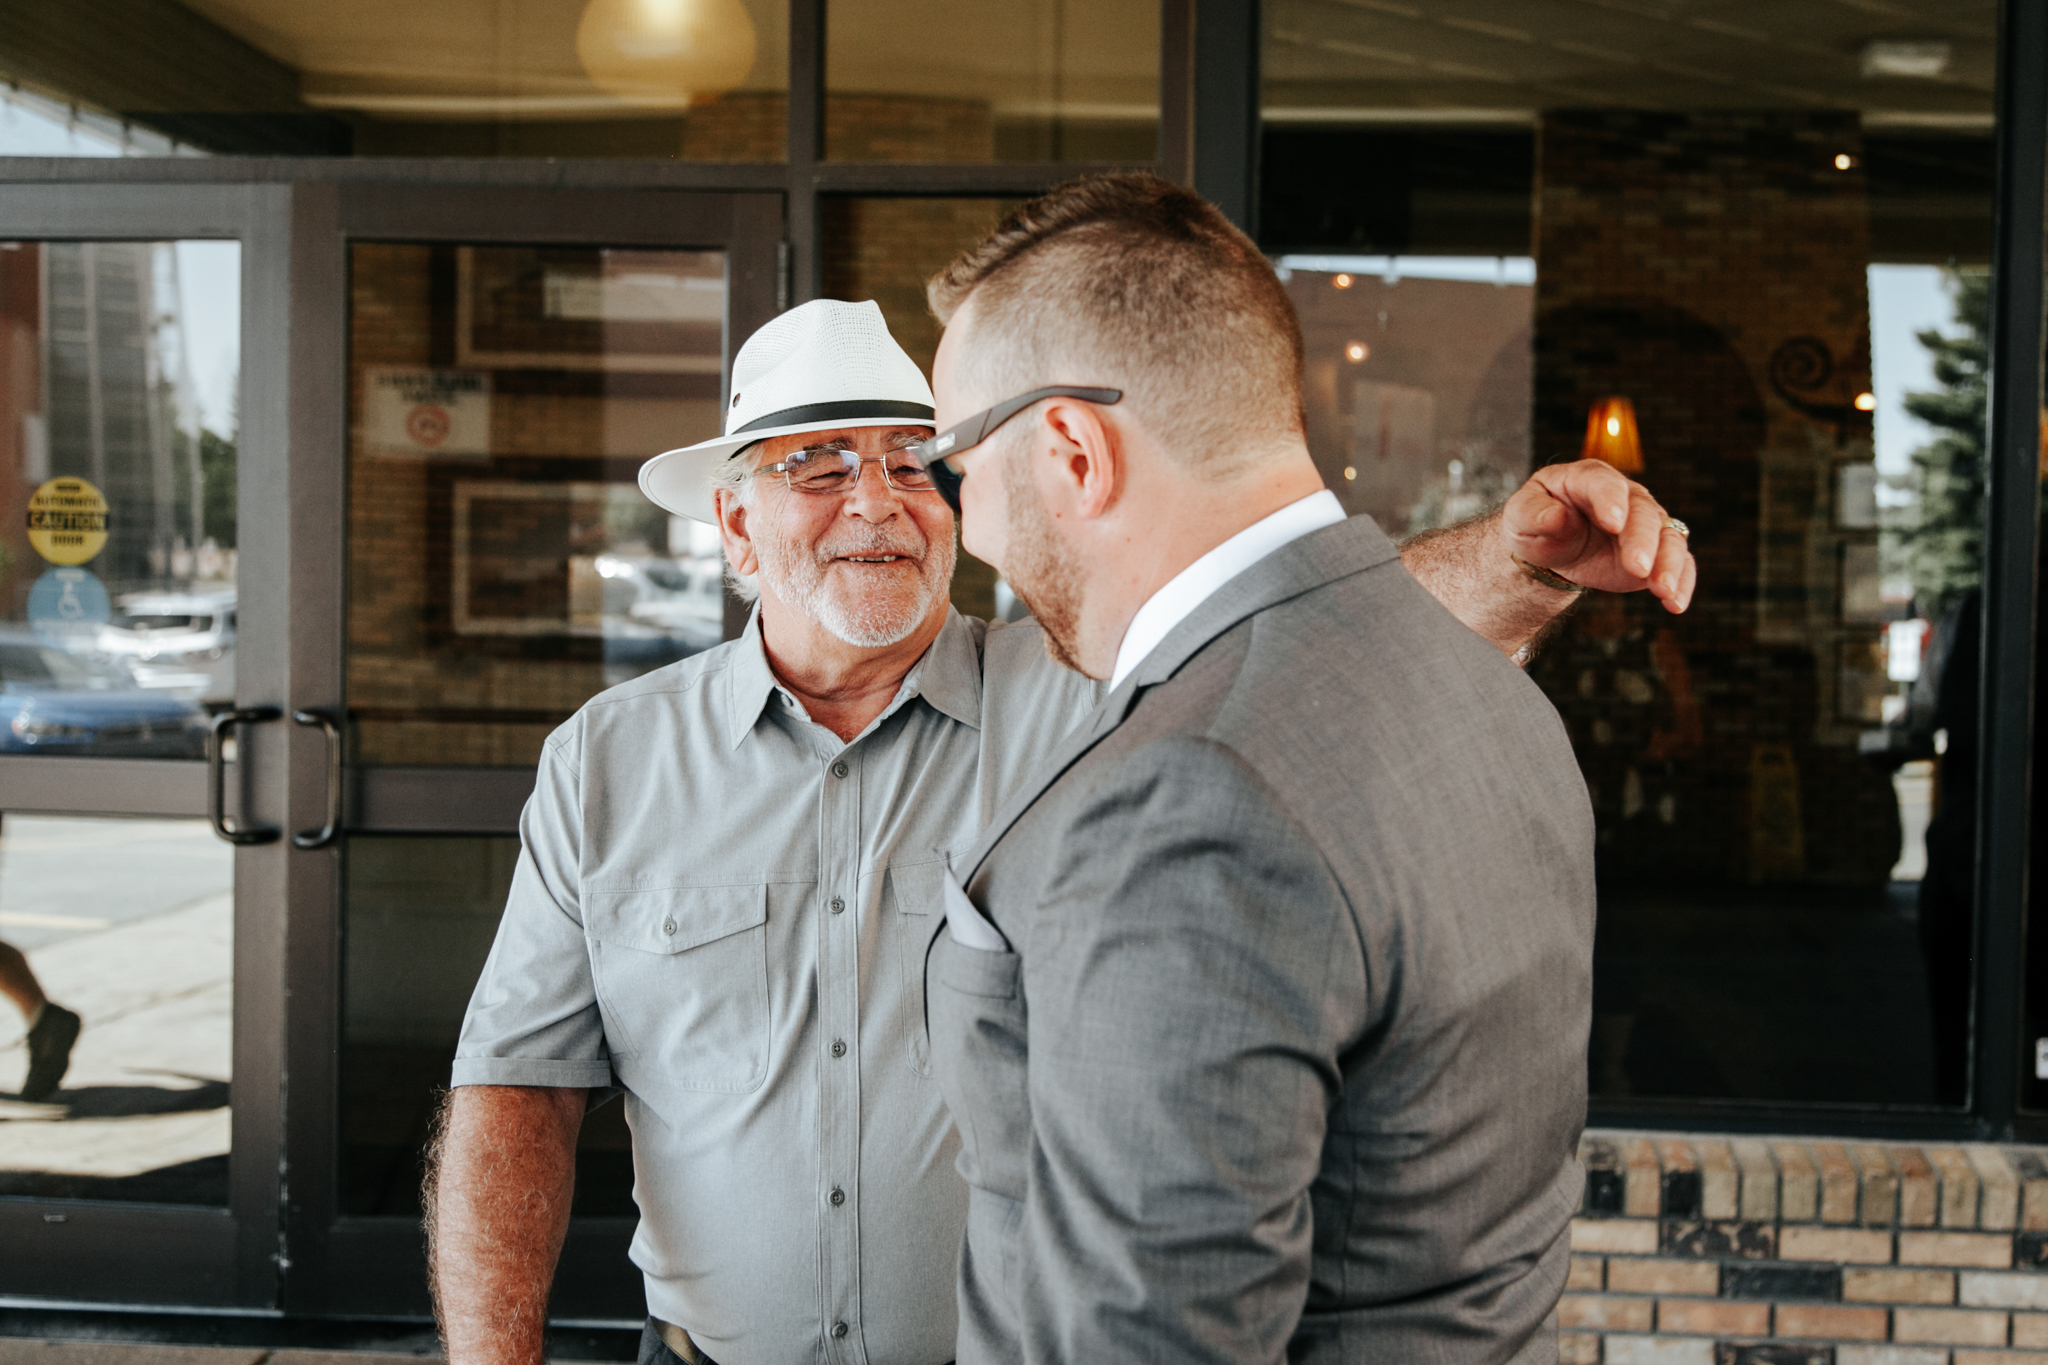 lethbridge-wedding-photographer-love-and-be-loved-photography-trent-danielle-galt-reception-picture-image-photo-21.jpg